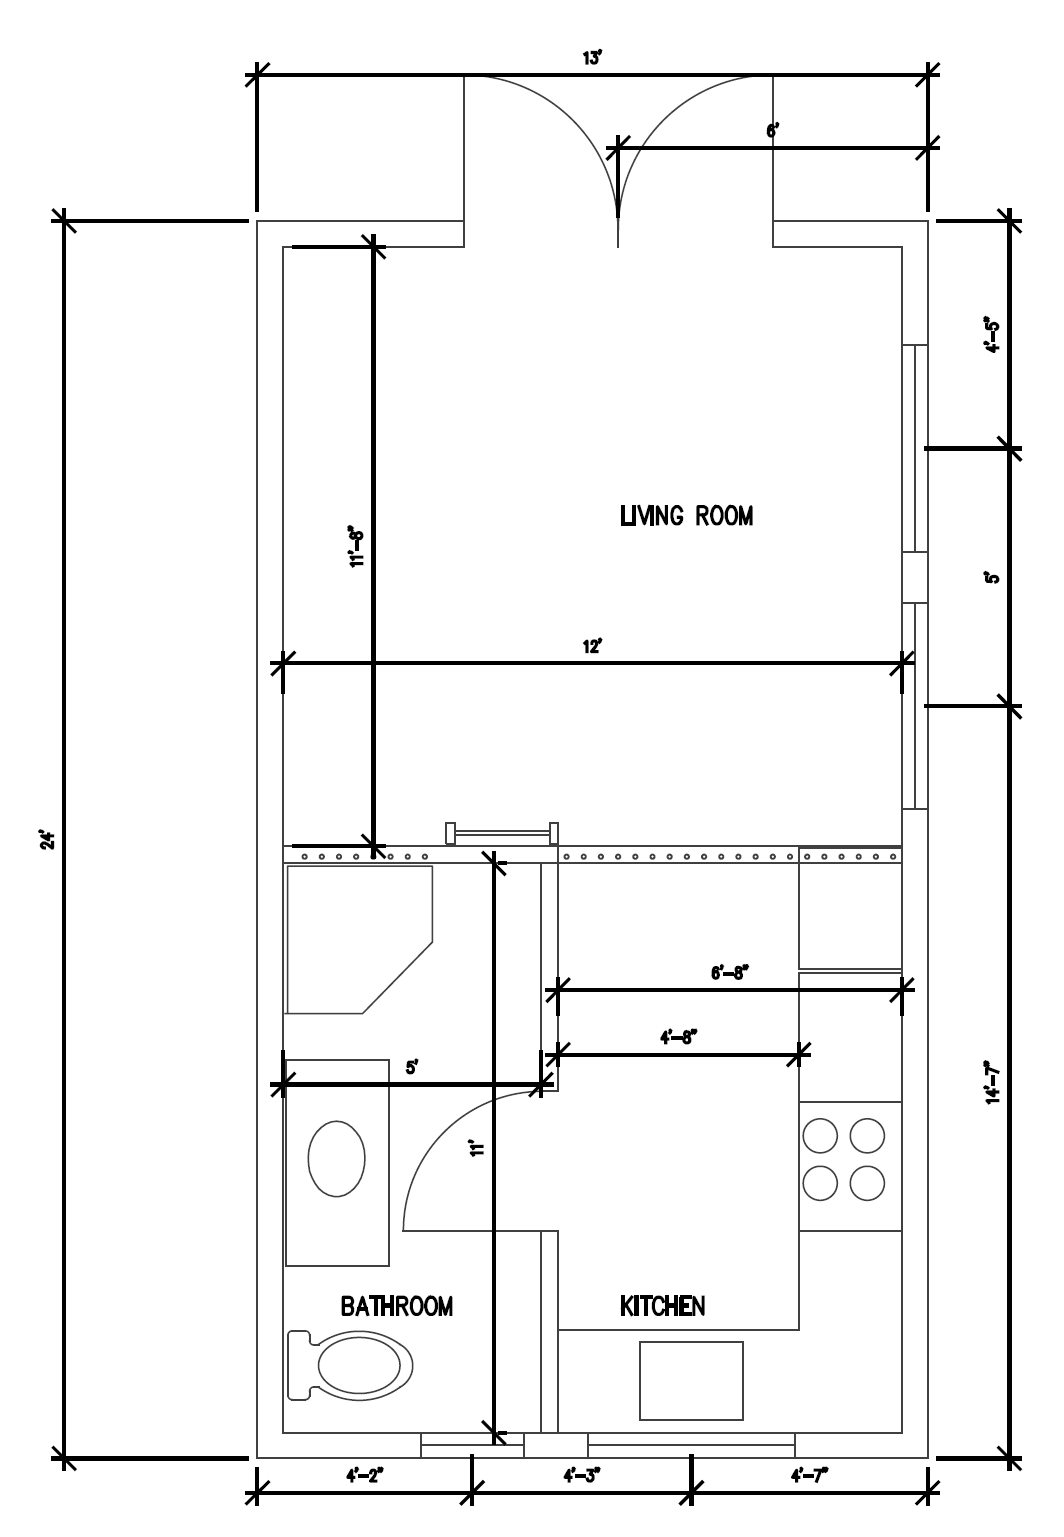 315 Floor Plan Bottom.PNG